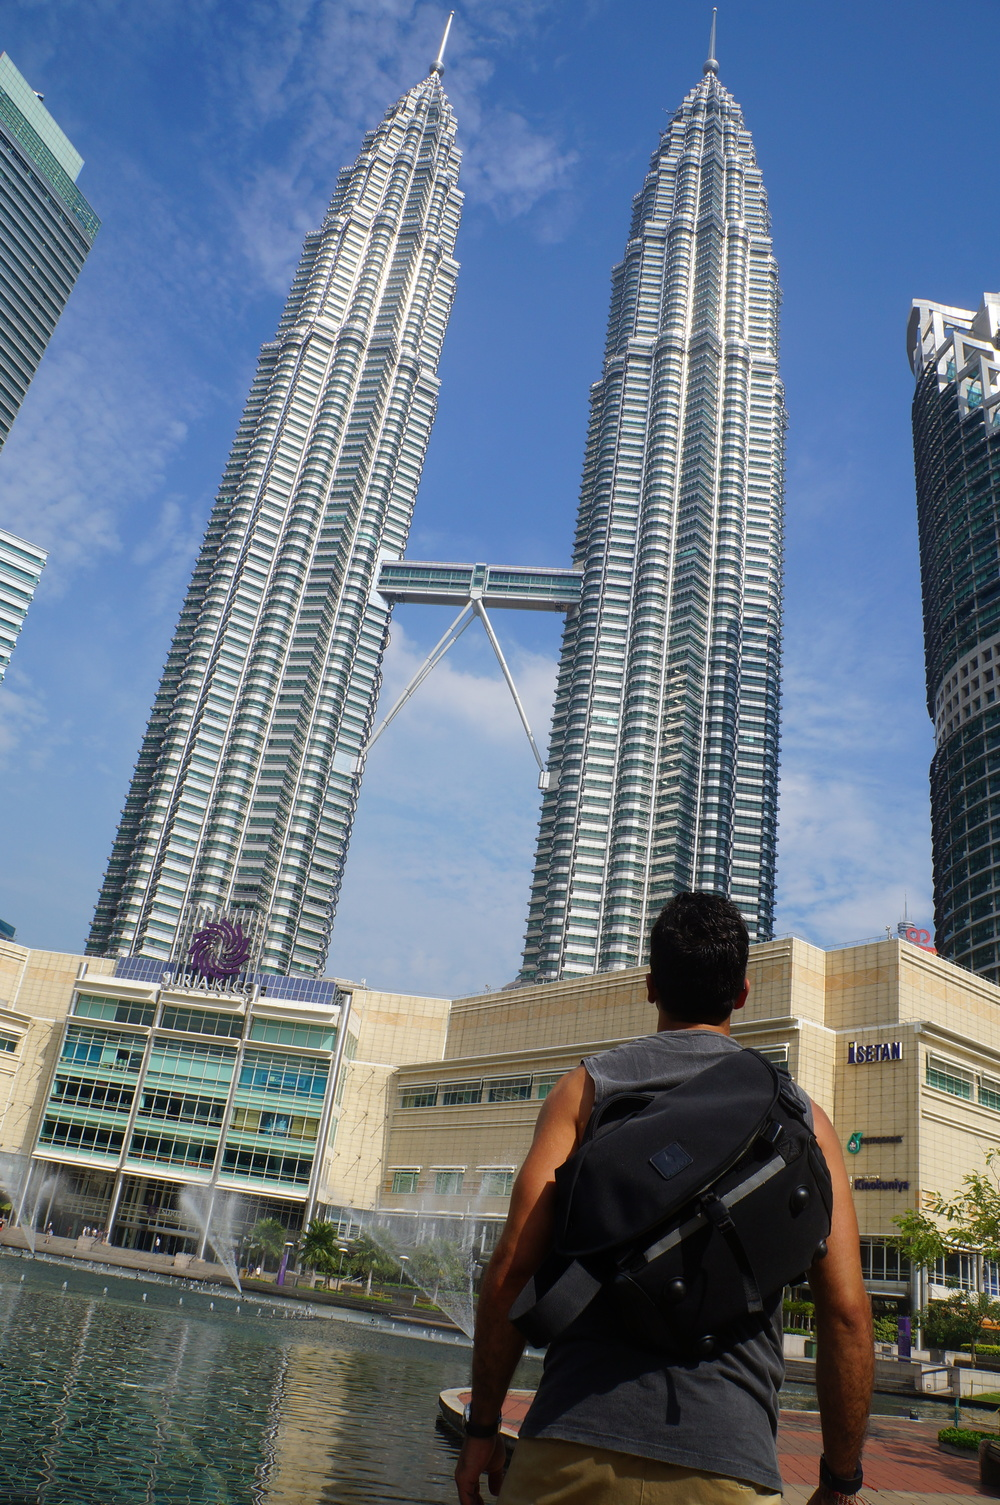 Ramiro in Kuala Lumpur looking at the Petronas Twin Towers with the ALPAKA bag.